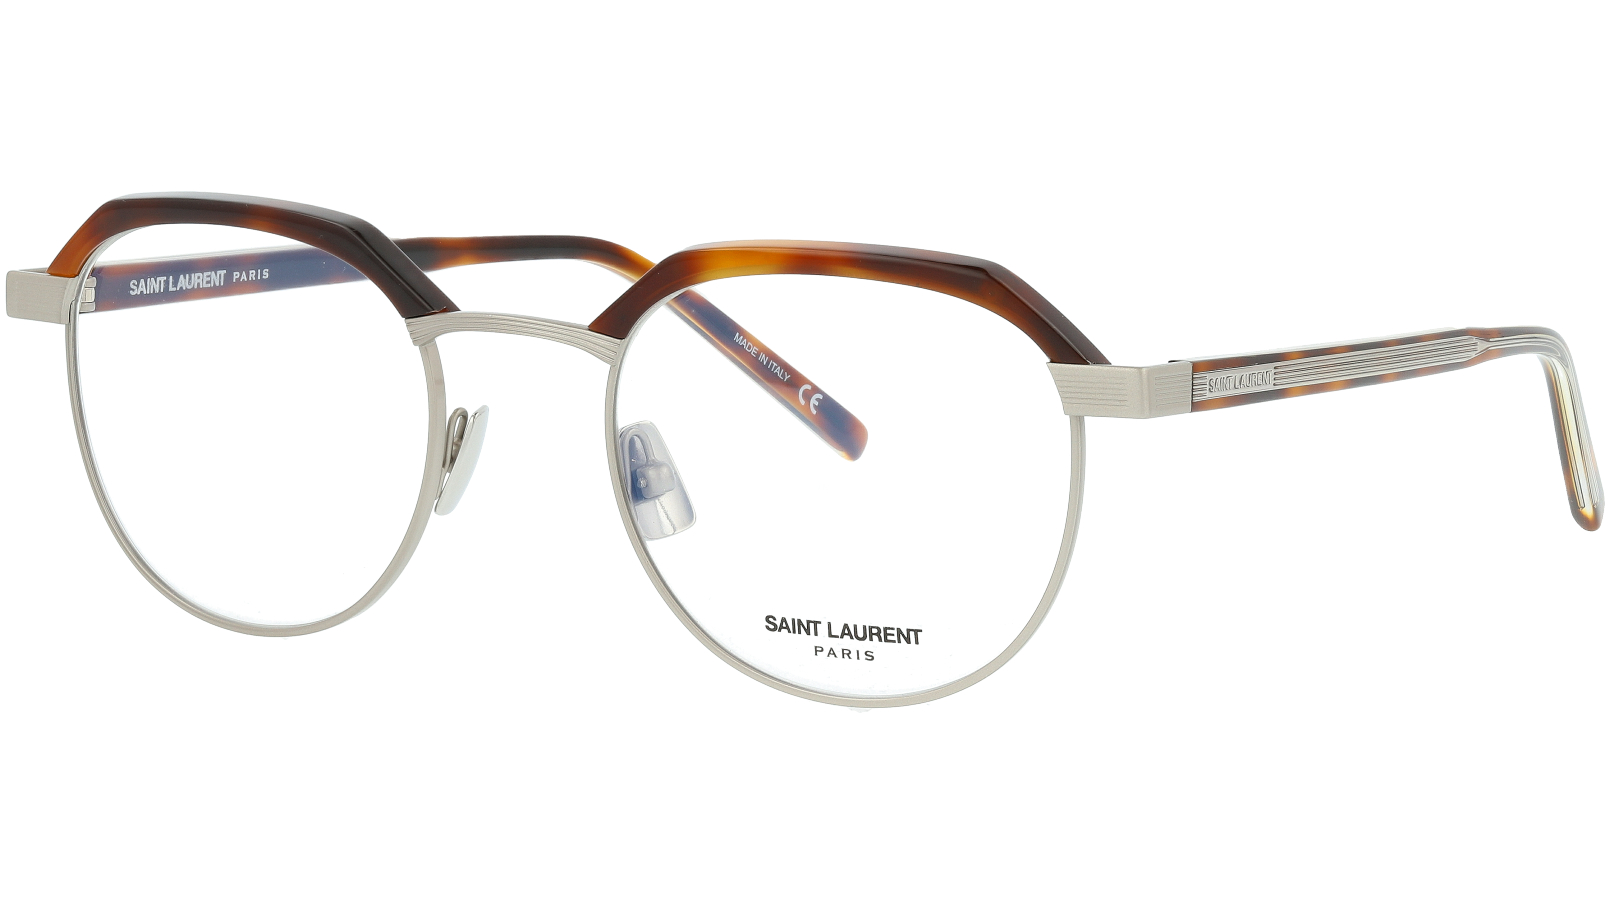 SAINT LAURENT SL124 002 50 AVANA Glasses